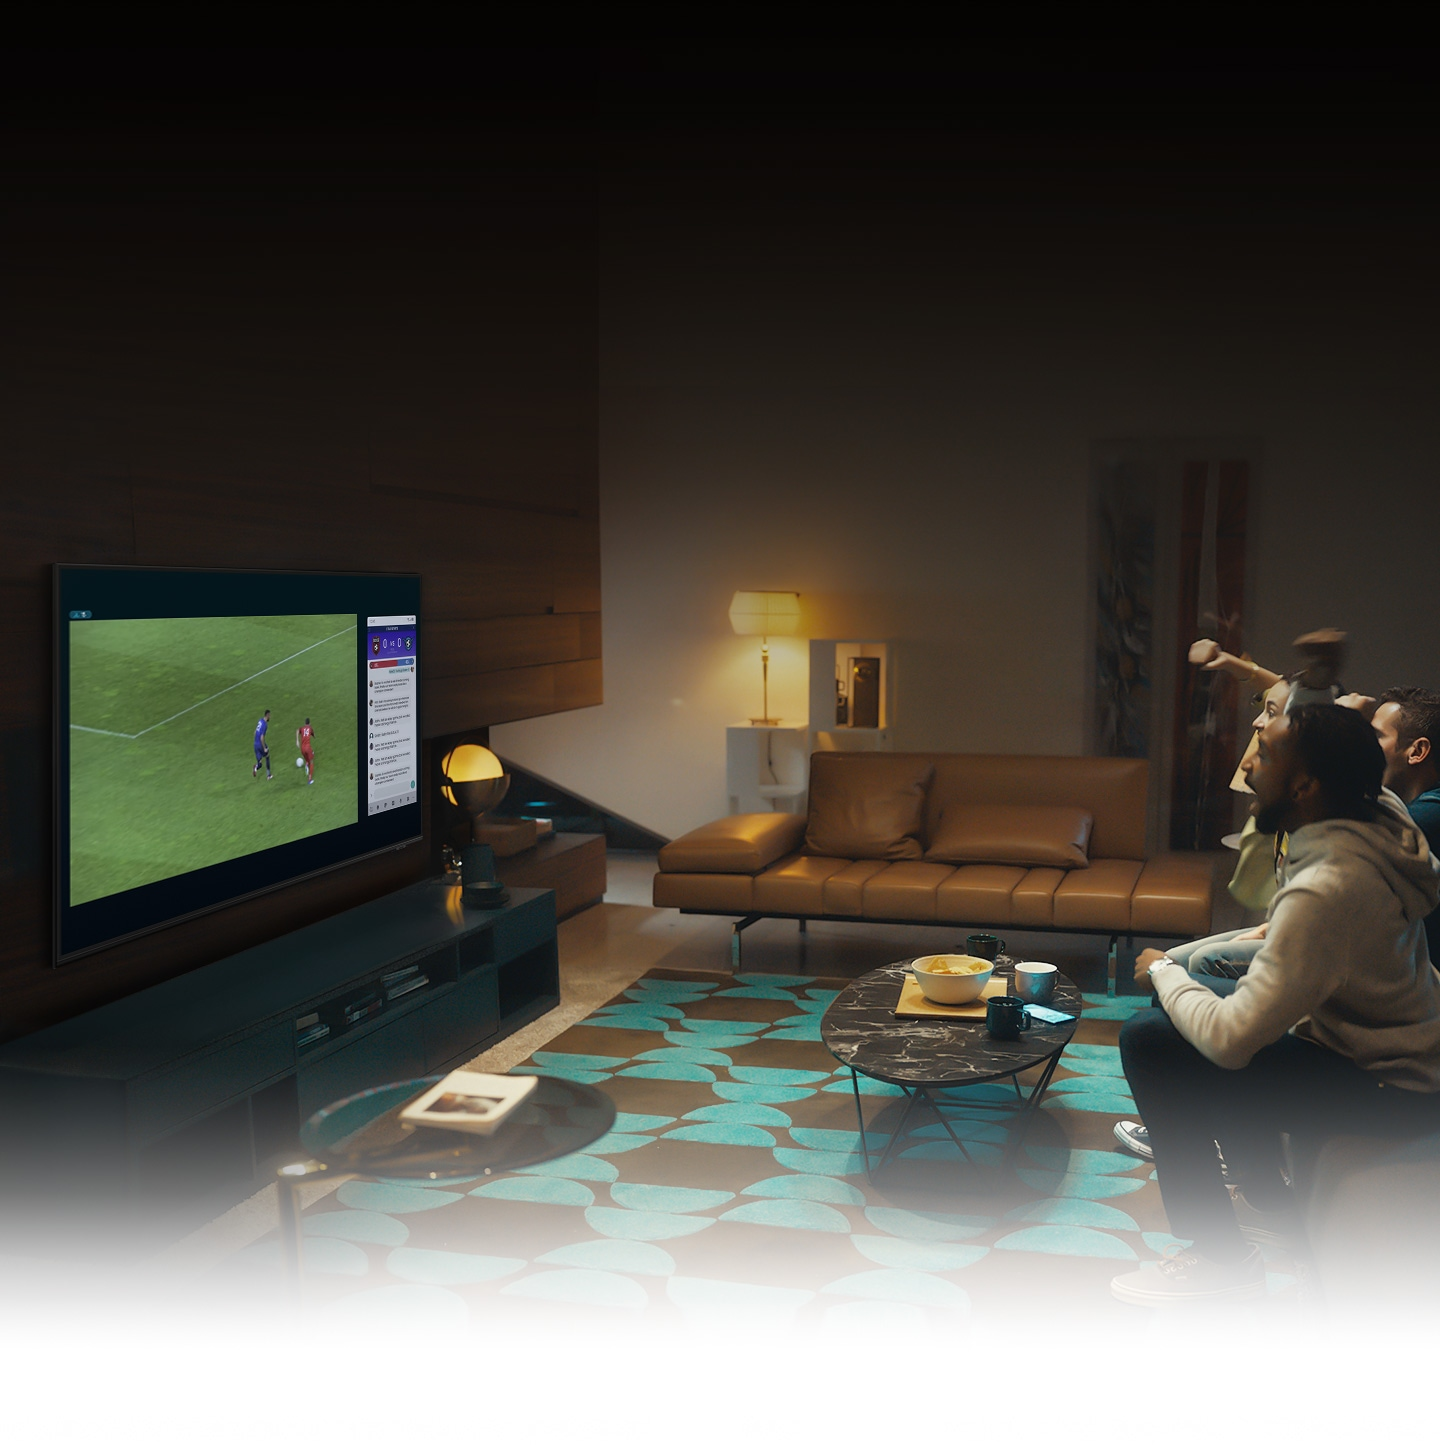 A group of people use UHD TV Multi view feature to enjoy a football match and view play-by-play information at the same time on the same screen.